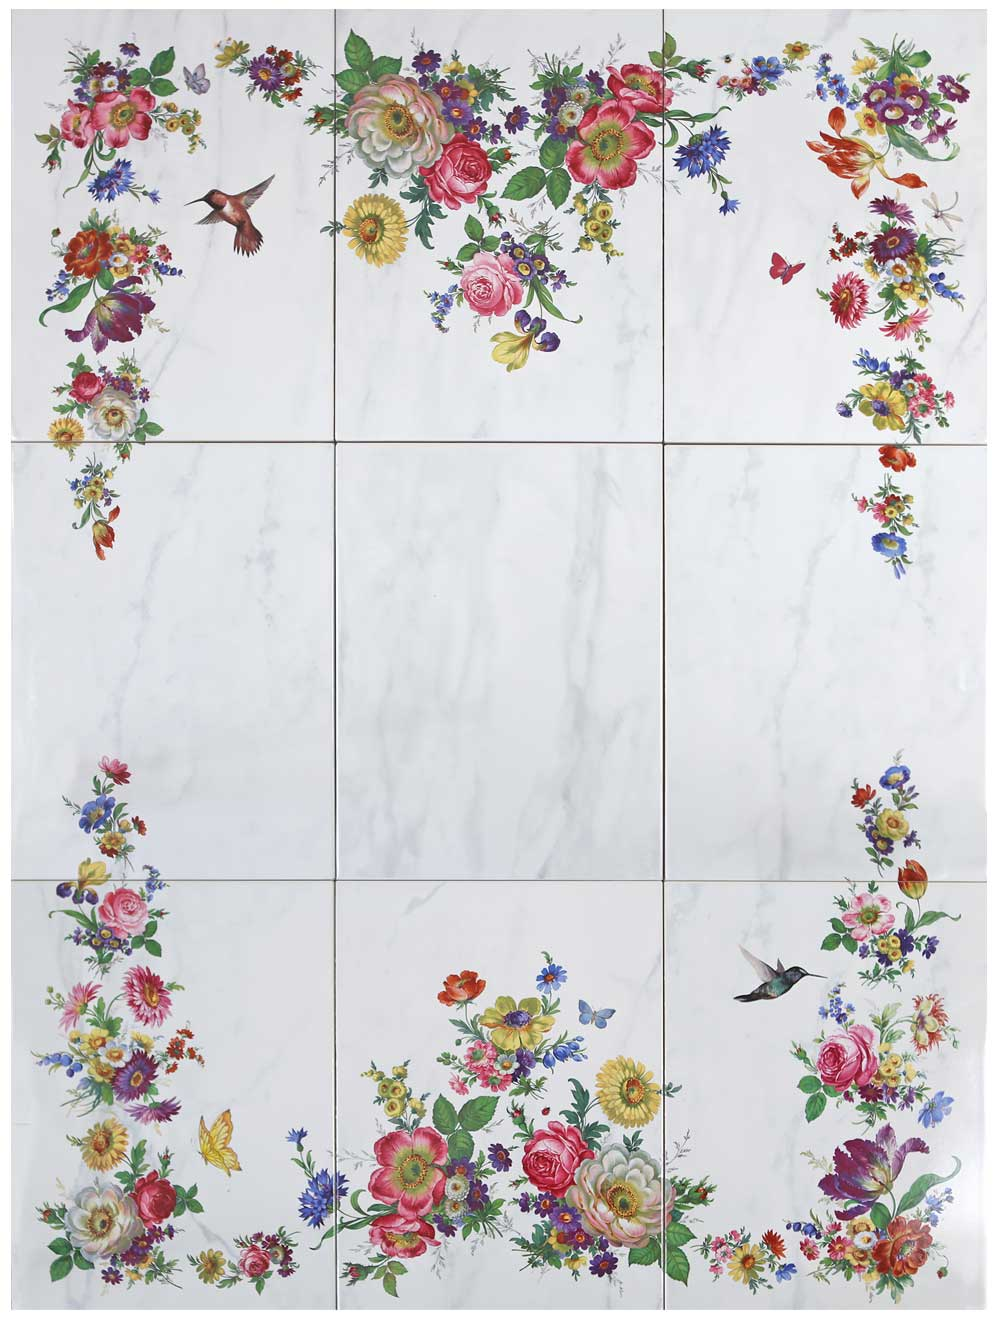 Floral Tile Mural Accessories Decorated Bathroom Blog